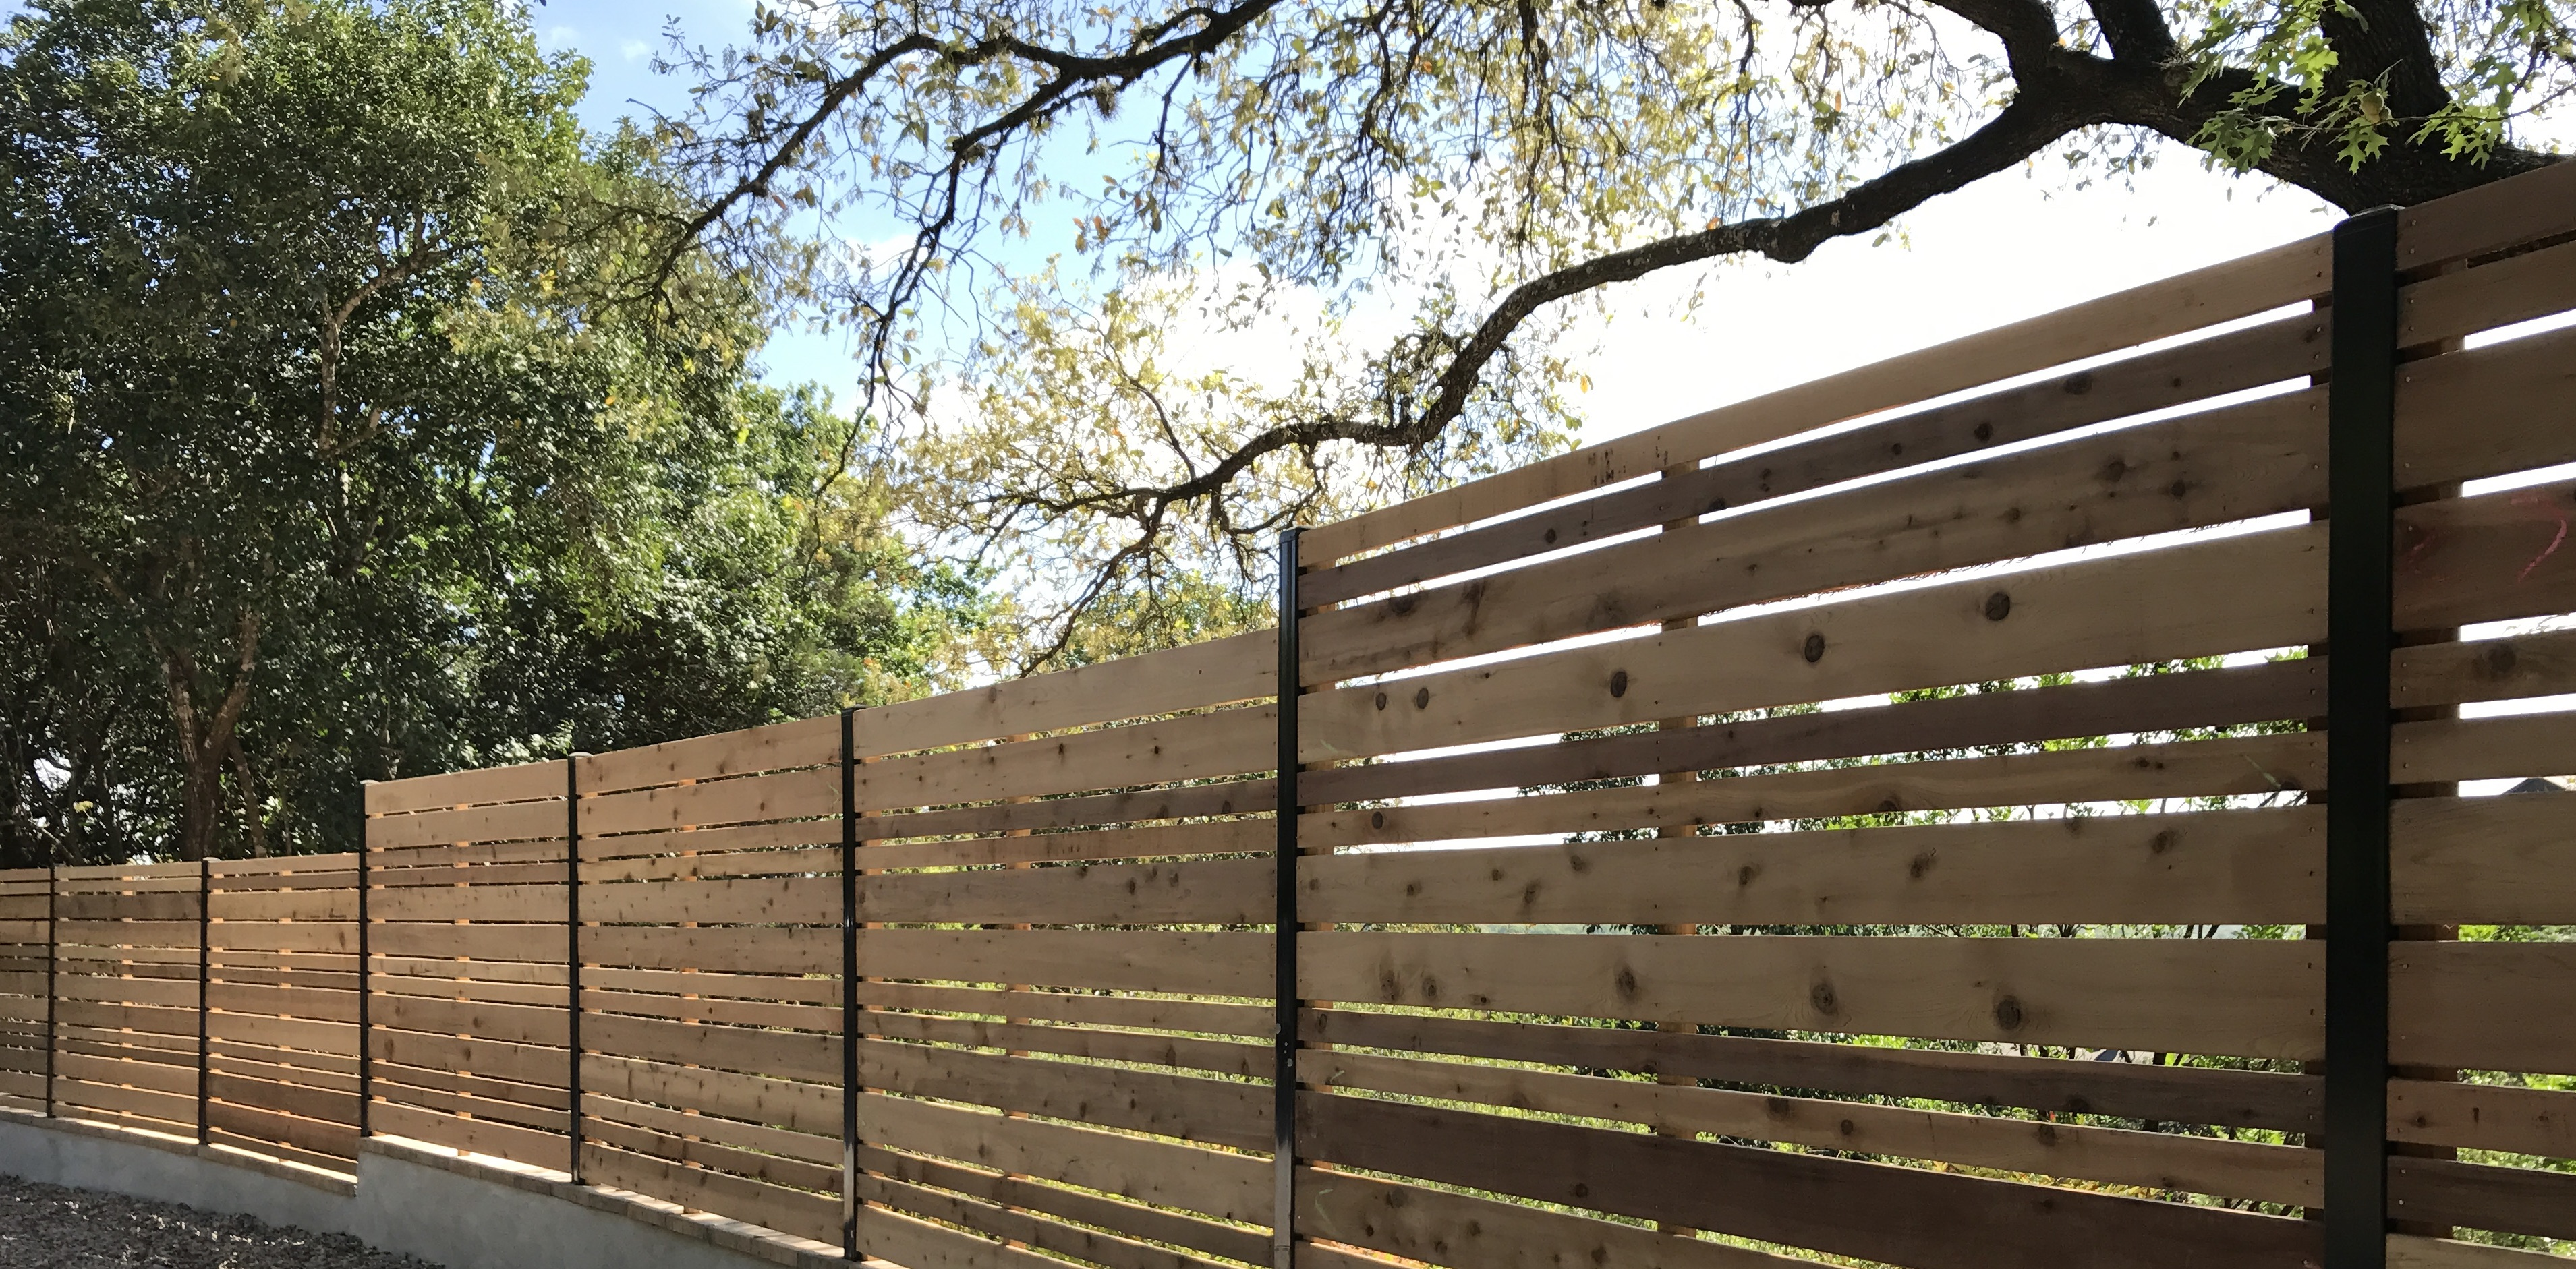 Austin brothers fence company quality fence installation semi private horizontal wood fence with custom alternating pickets and supportive mid rail upgrade made by austin brothers fence co baanklon Image collections